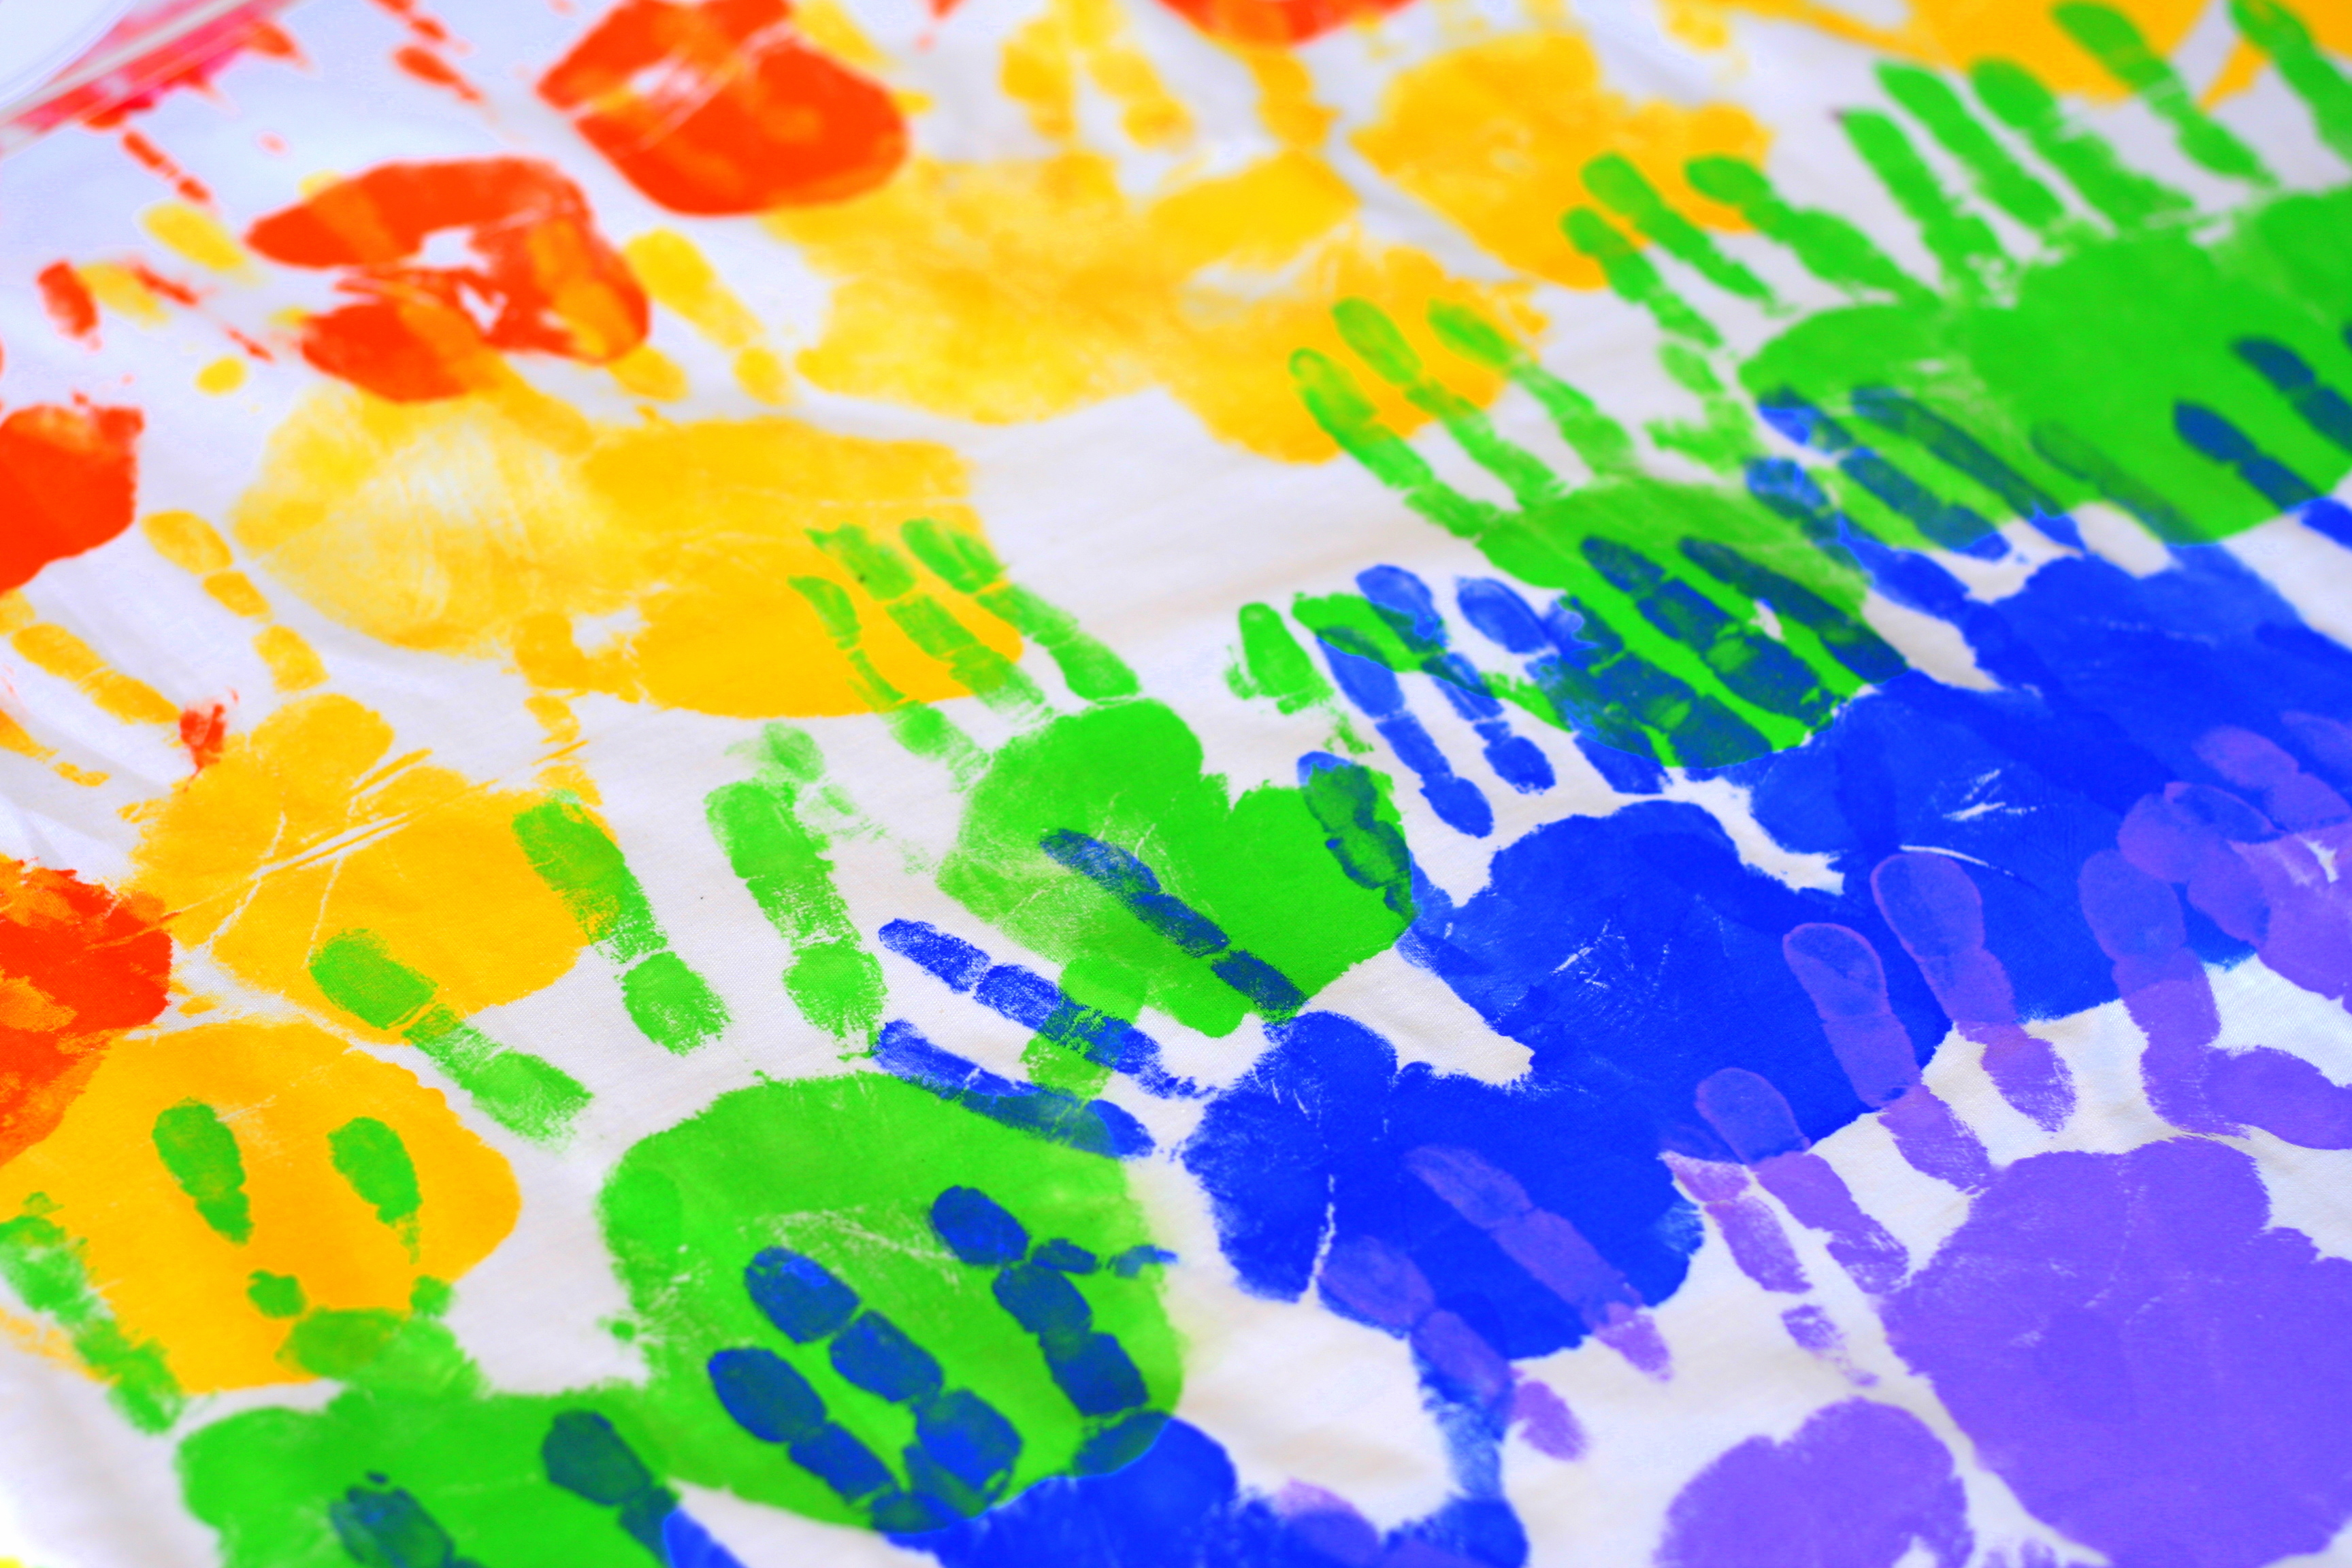 Delicieux File:Colorful Handprints On A Tablecloth